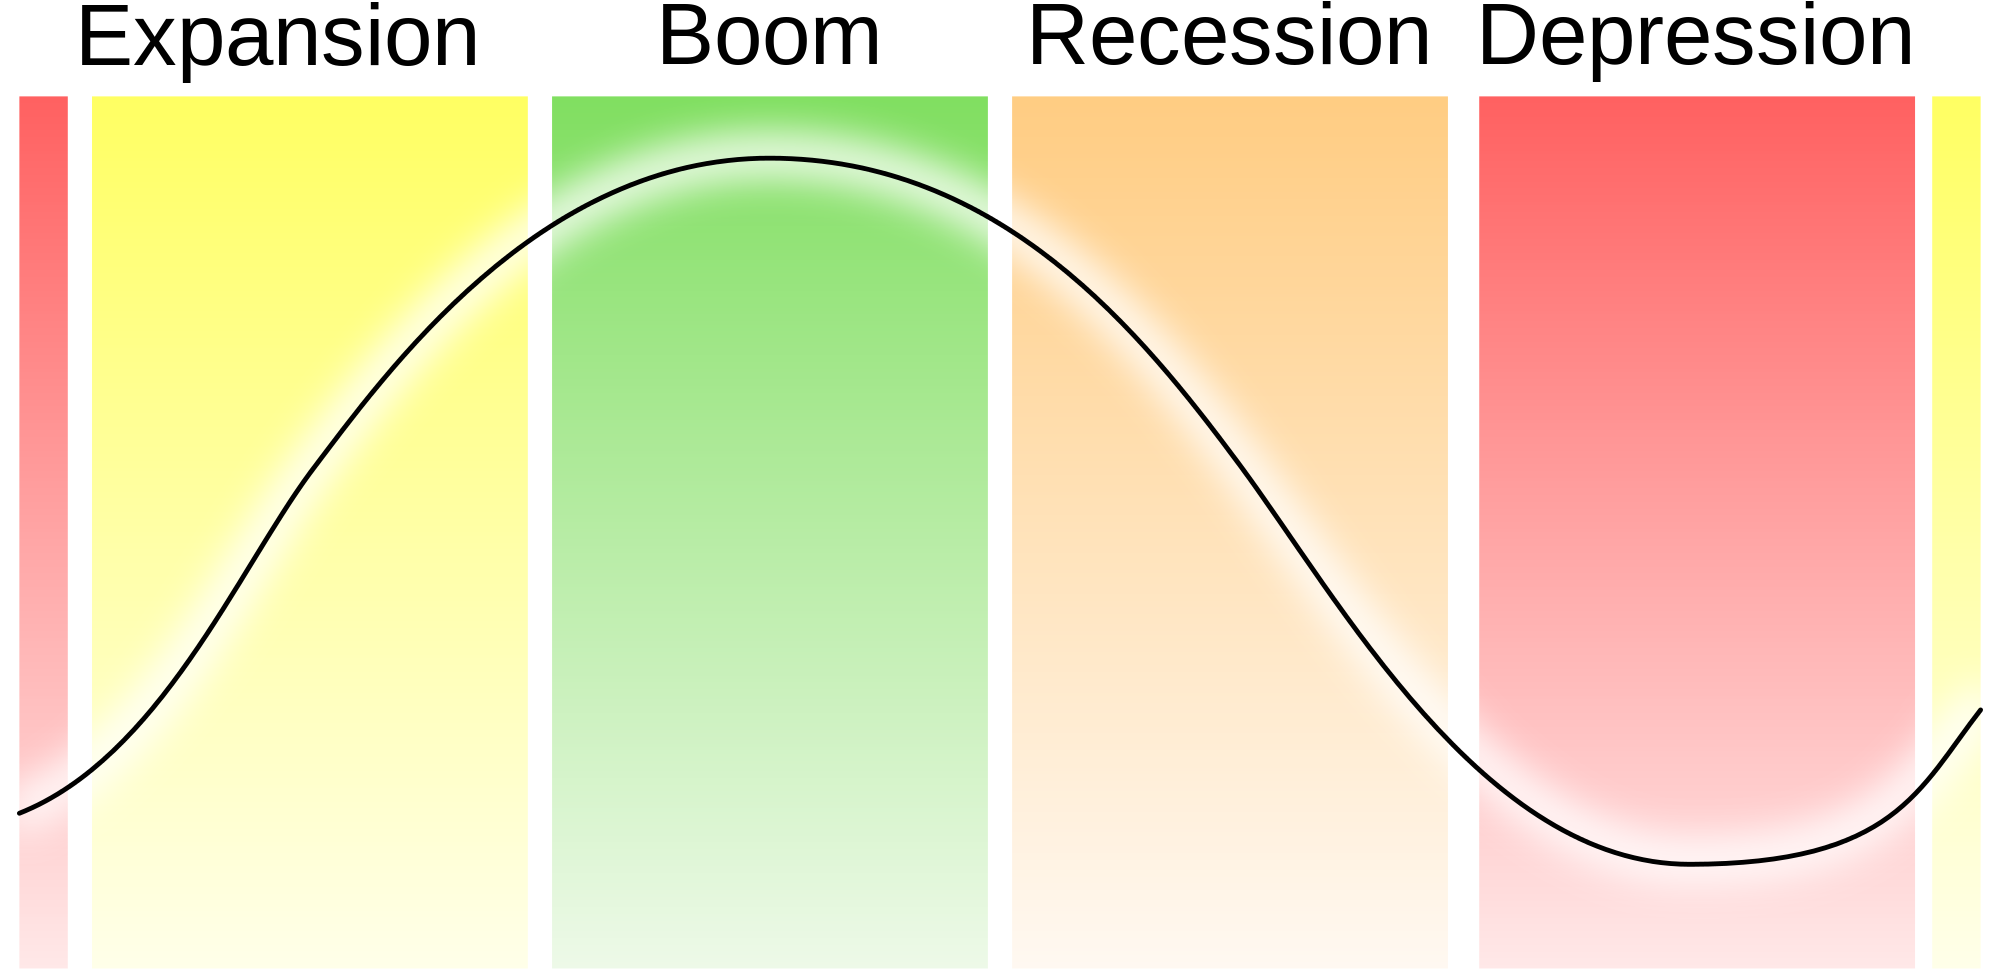 business cycles Business cycle is the upward and downward movements of economic activity over a period of time learn more at higher rock education where all of our economic lessons are free.